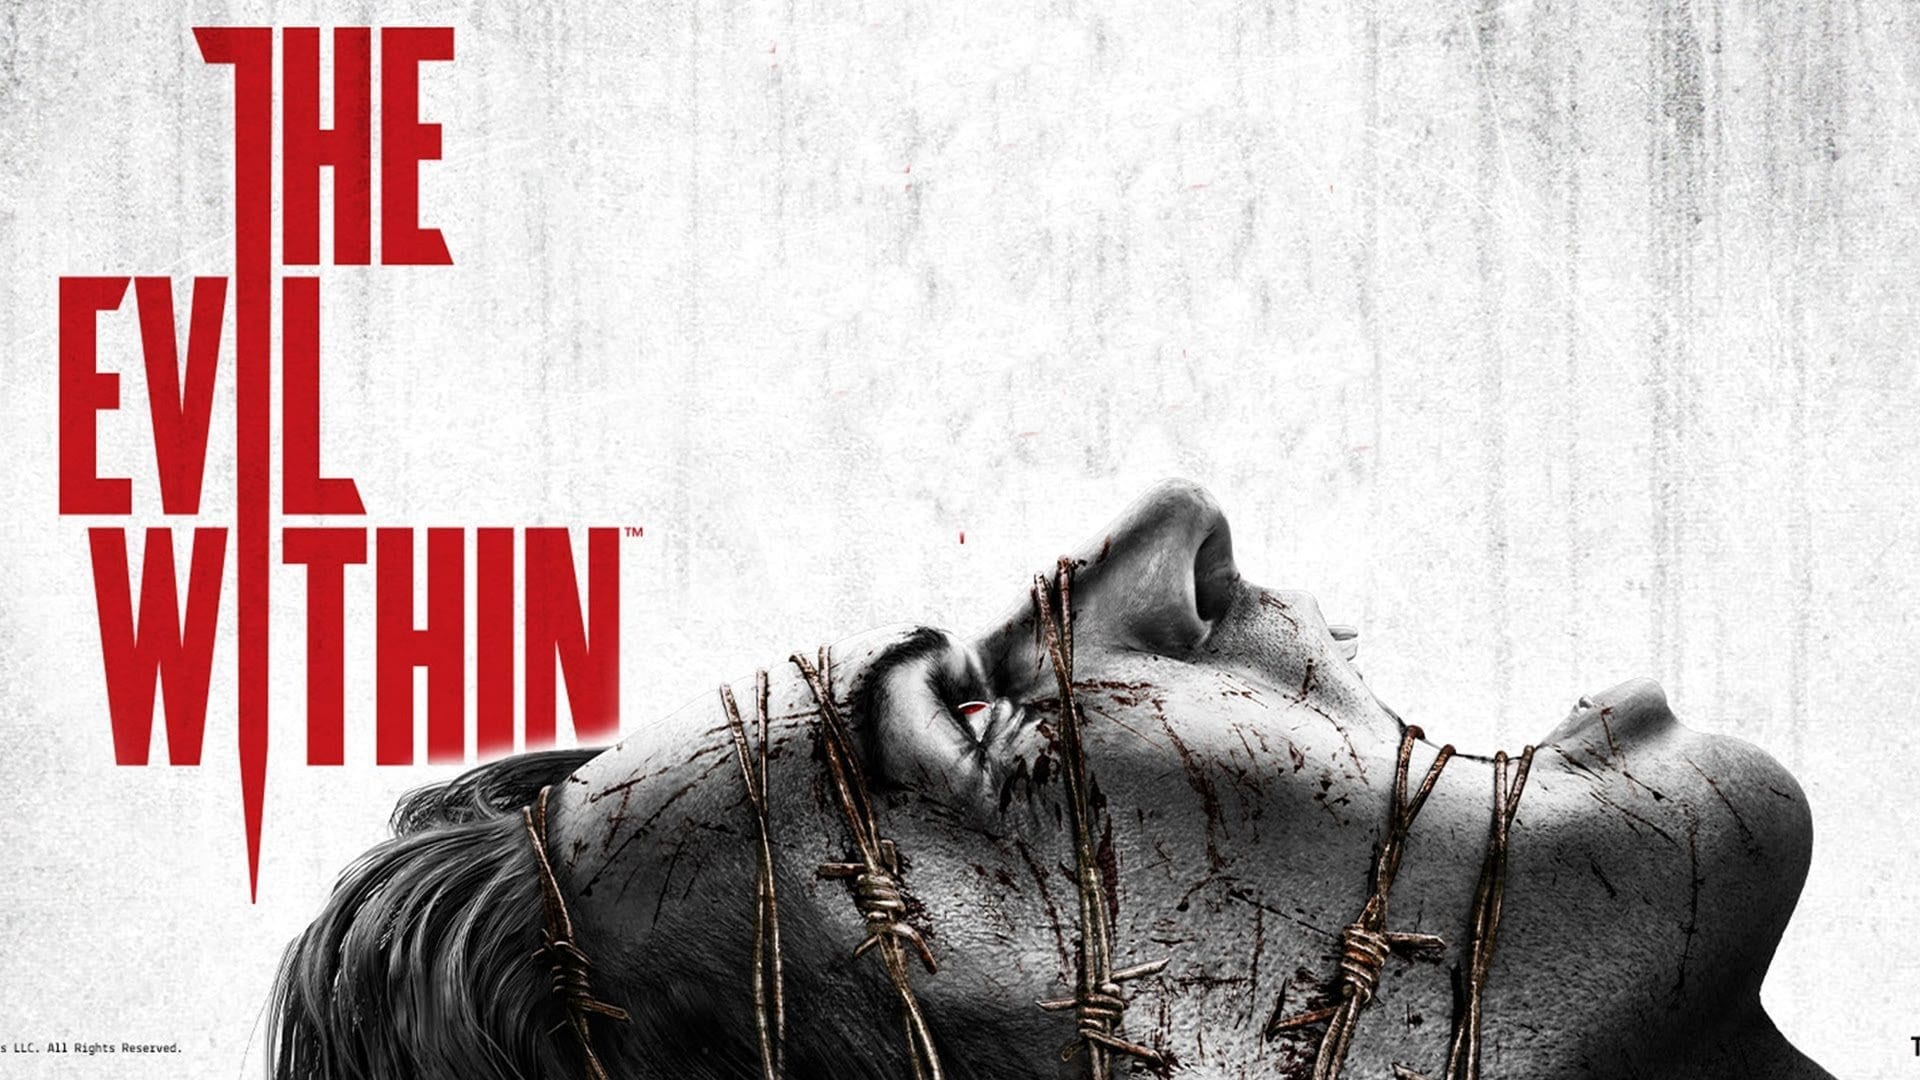 evil within survival horror action fighting 1ewith dark zombie monster blood wallpaper 2